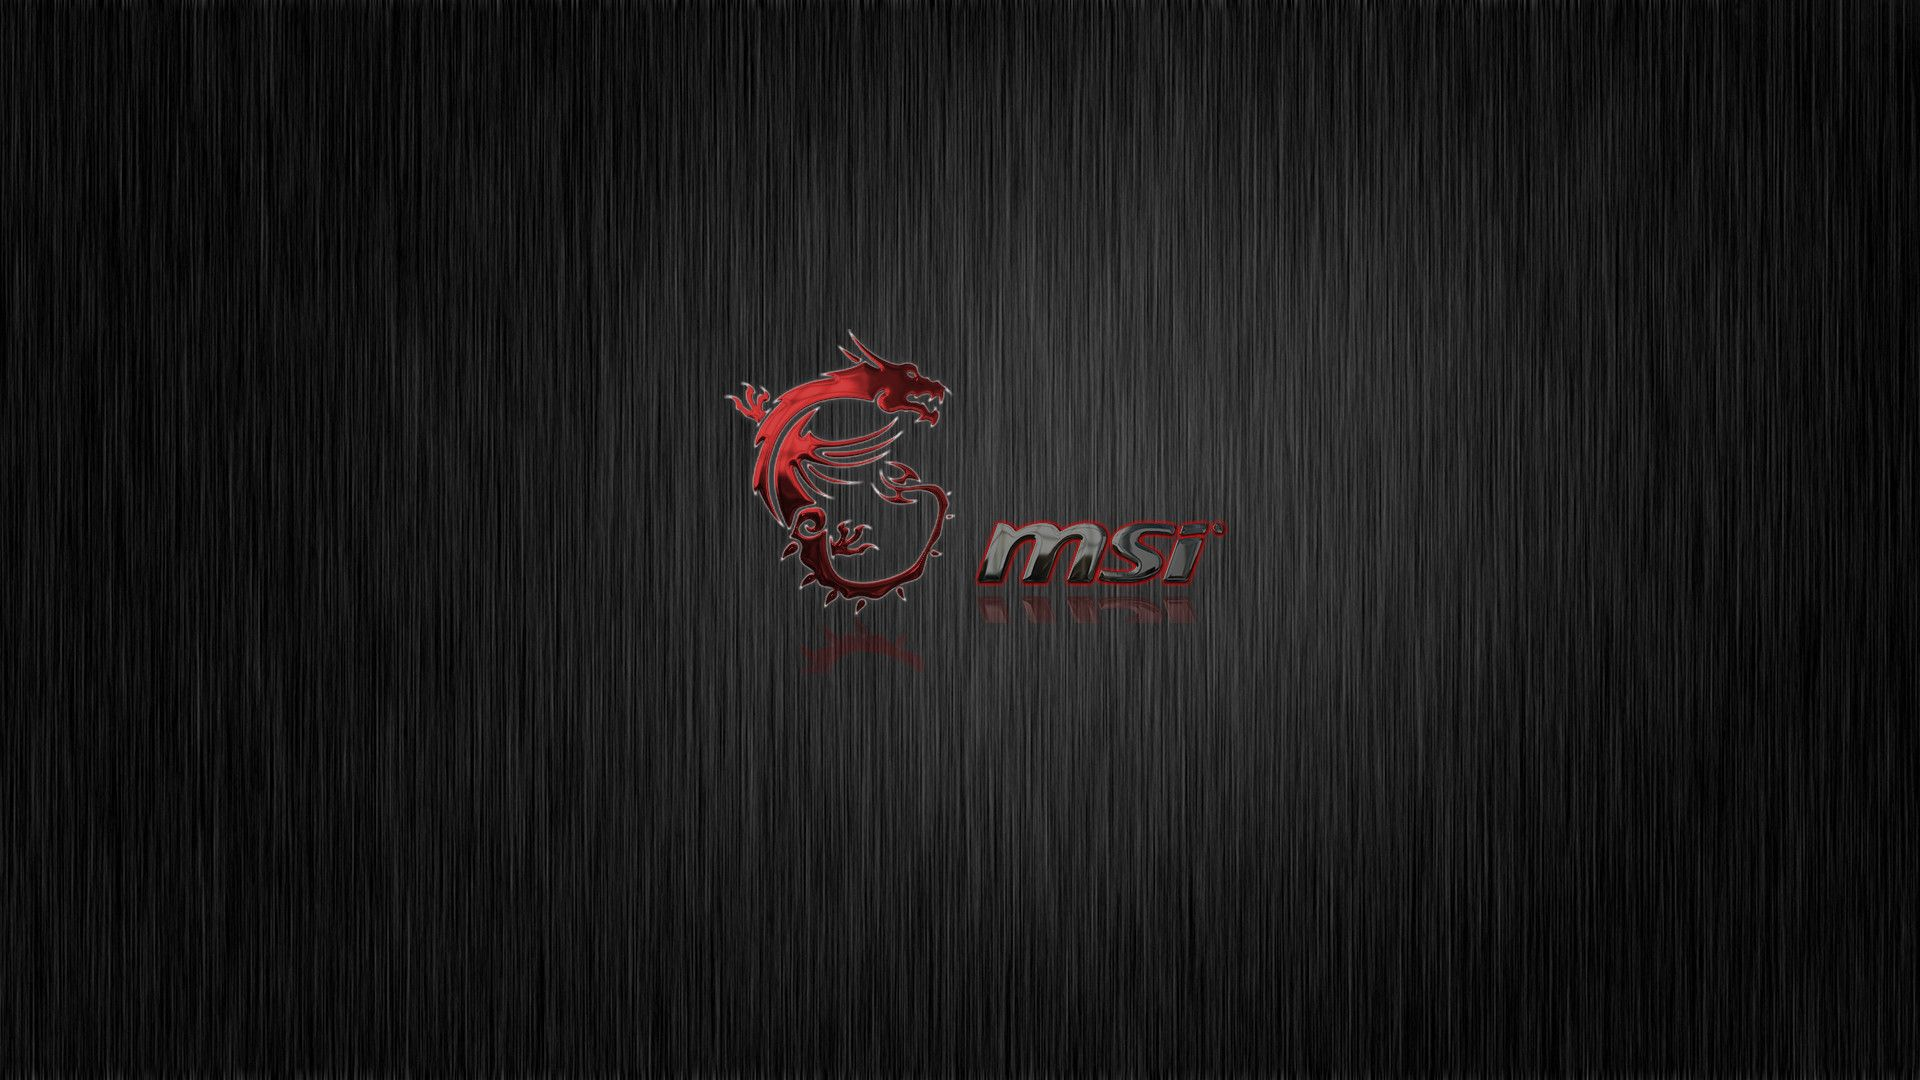 Res 1920x1080 Cool Collections Of Msi Backgrounds Hd For Desktop Laptop And Mobiles Here You Desktop Wallpaper Black Wallpaper Iphone Hd Wallpaper Iphone